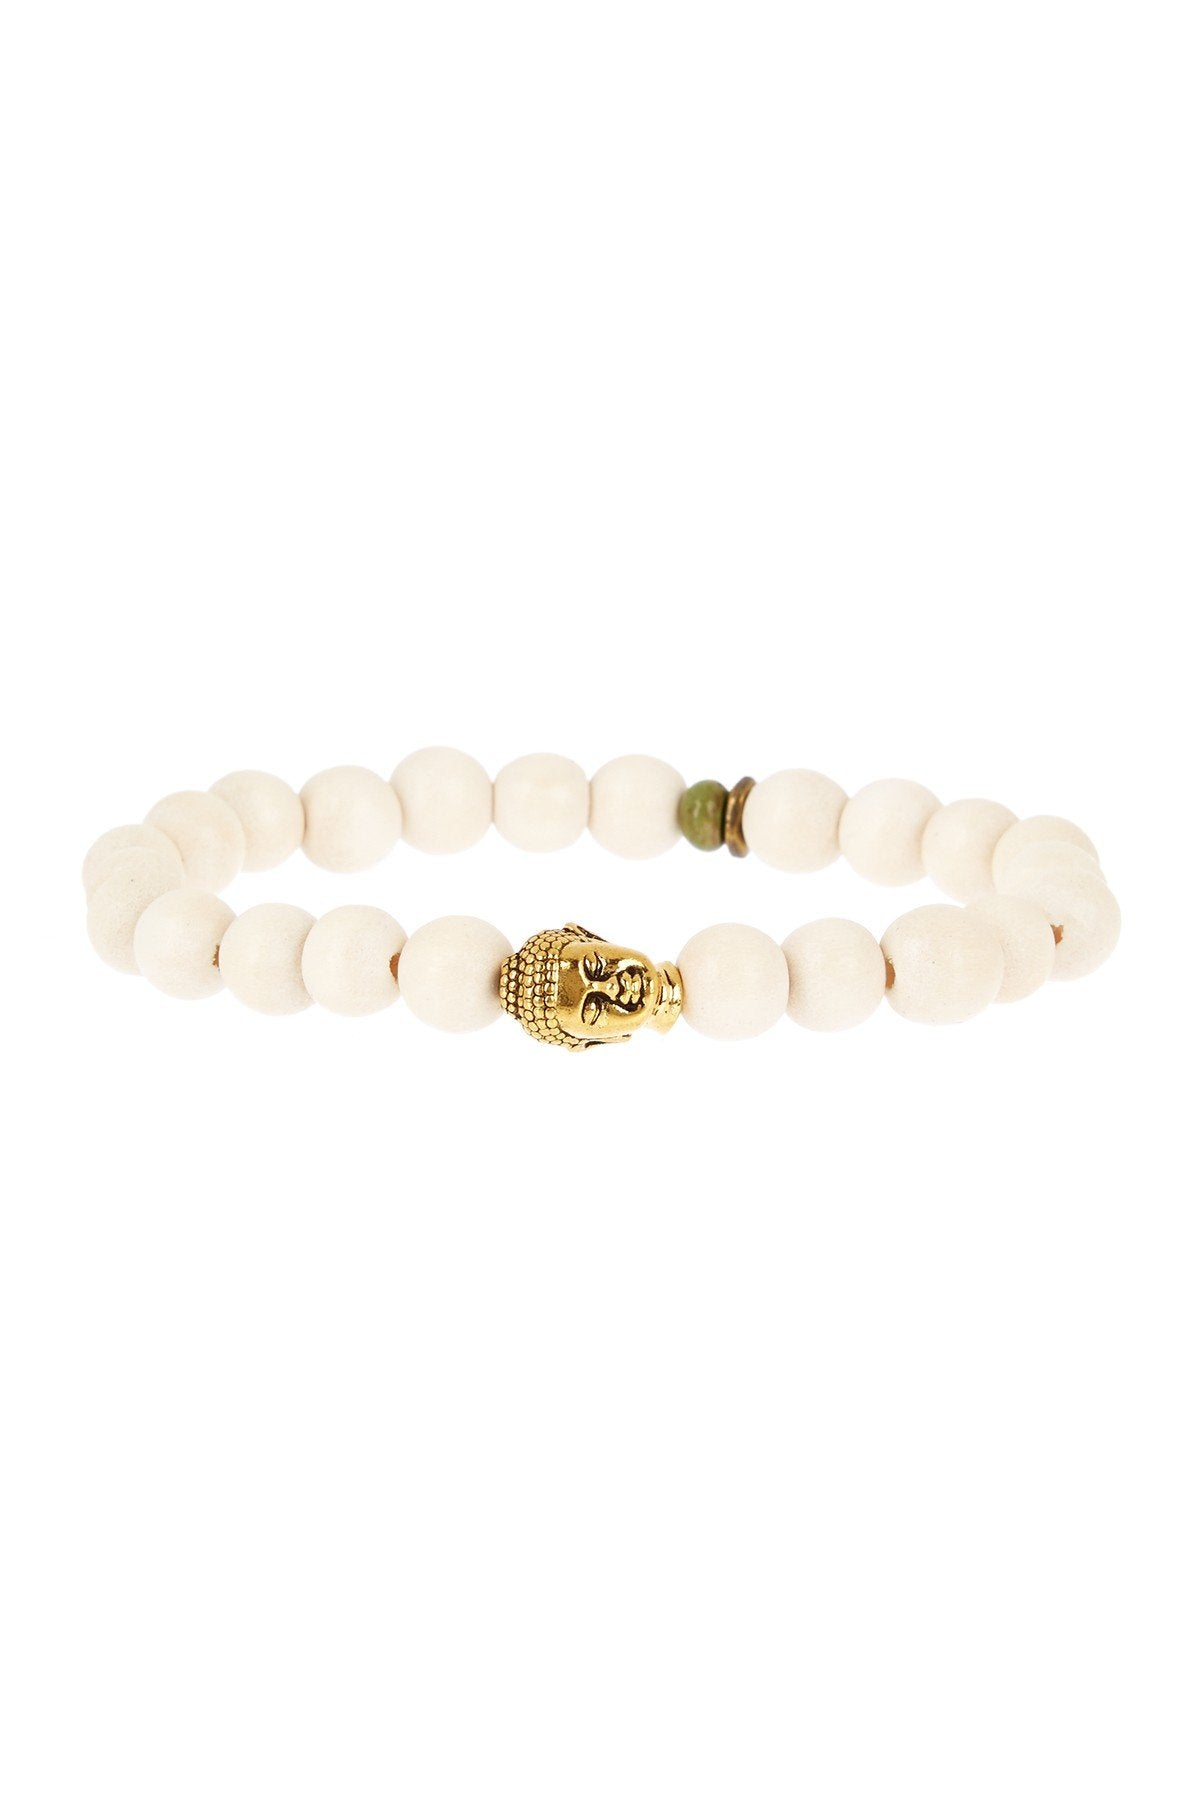 White Bead Buddha Bracelet in Gold